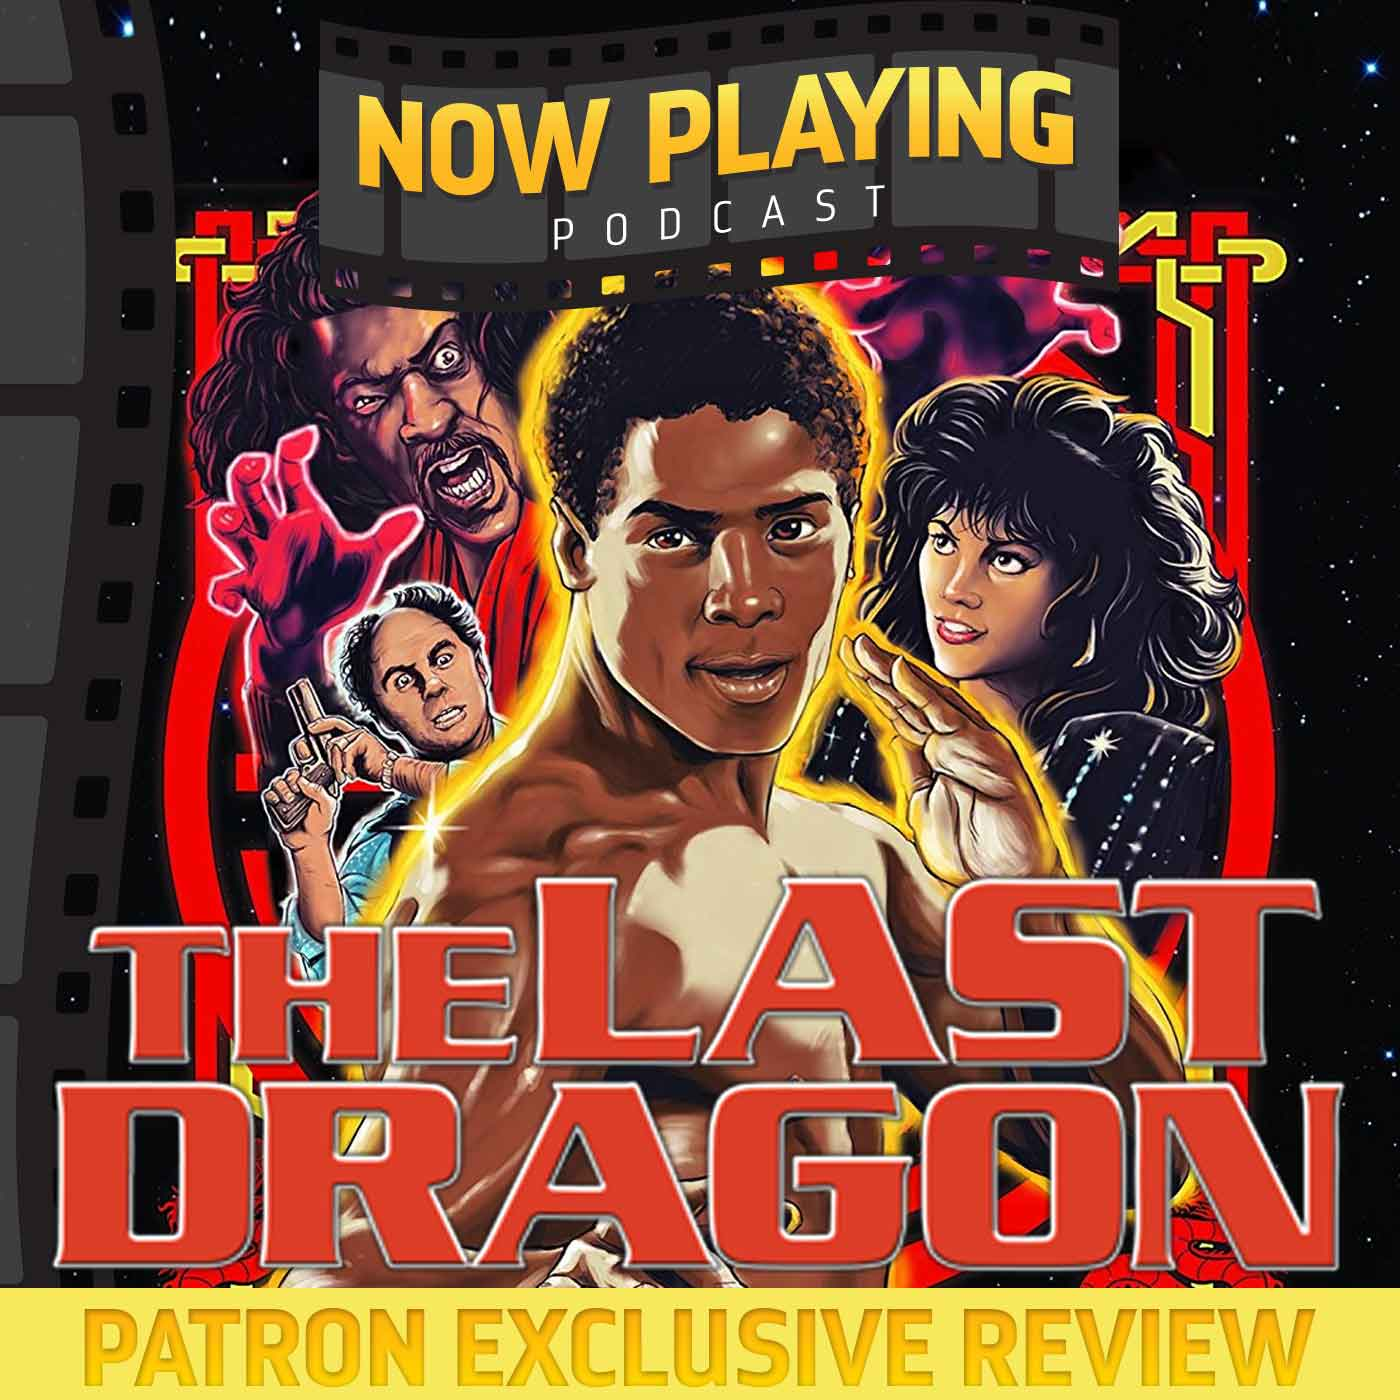 The Last Dragon - Patron Exclusive Review